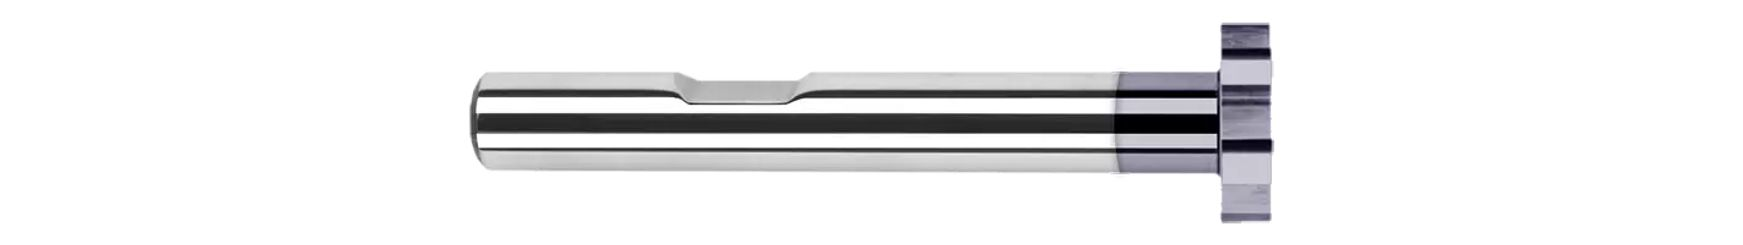 Keyseat Cutters - Square - Reduced Shank